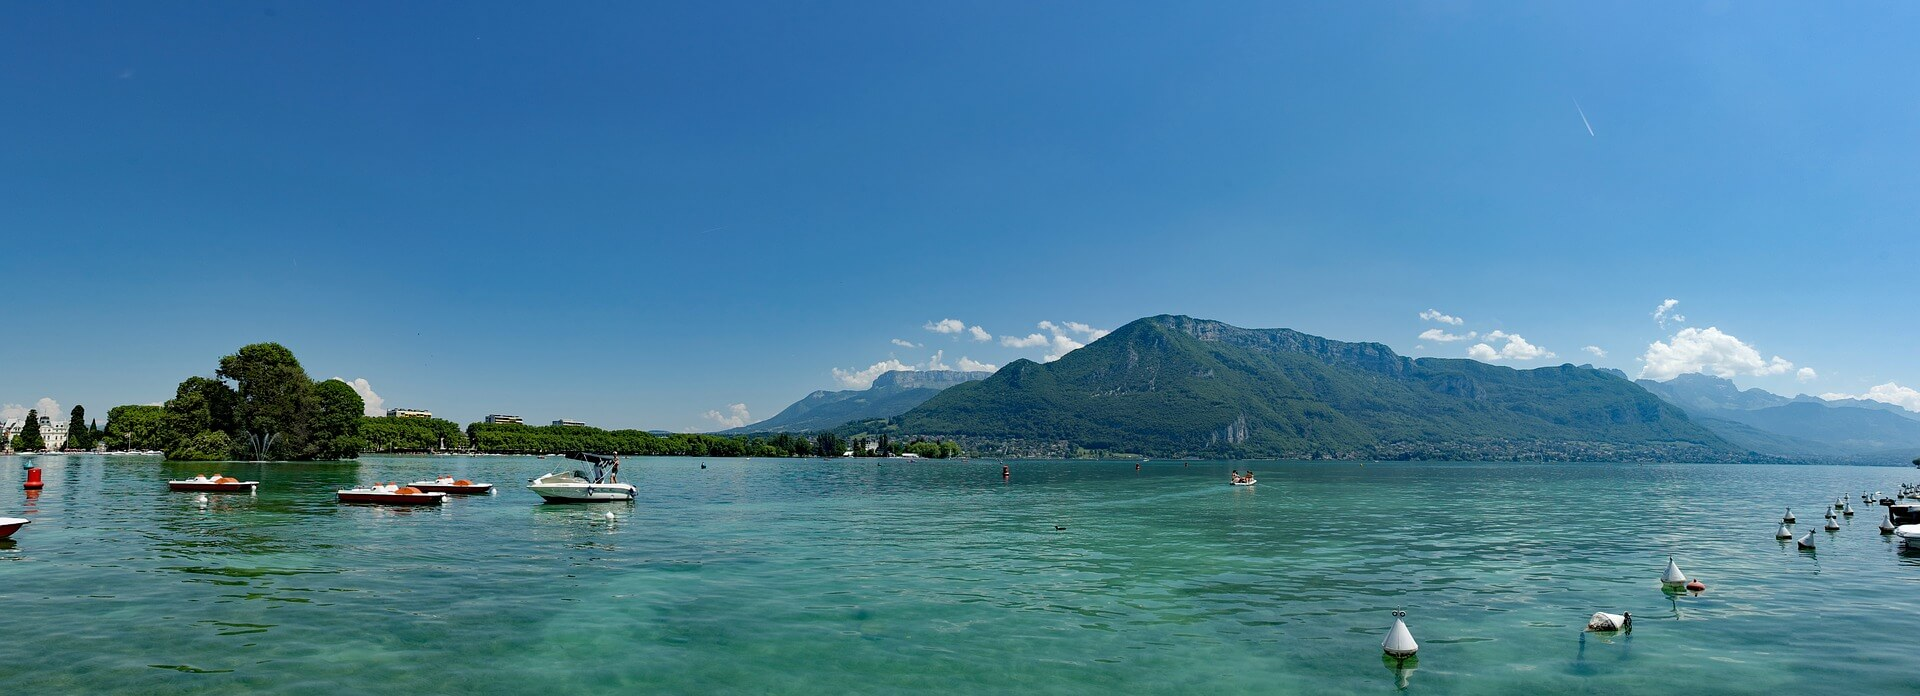 panorama annecy